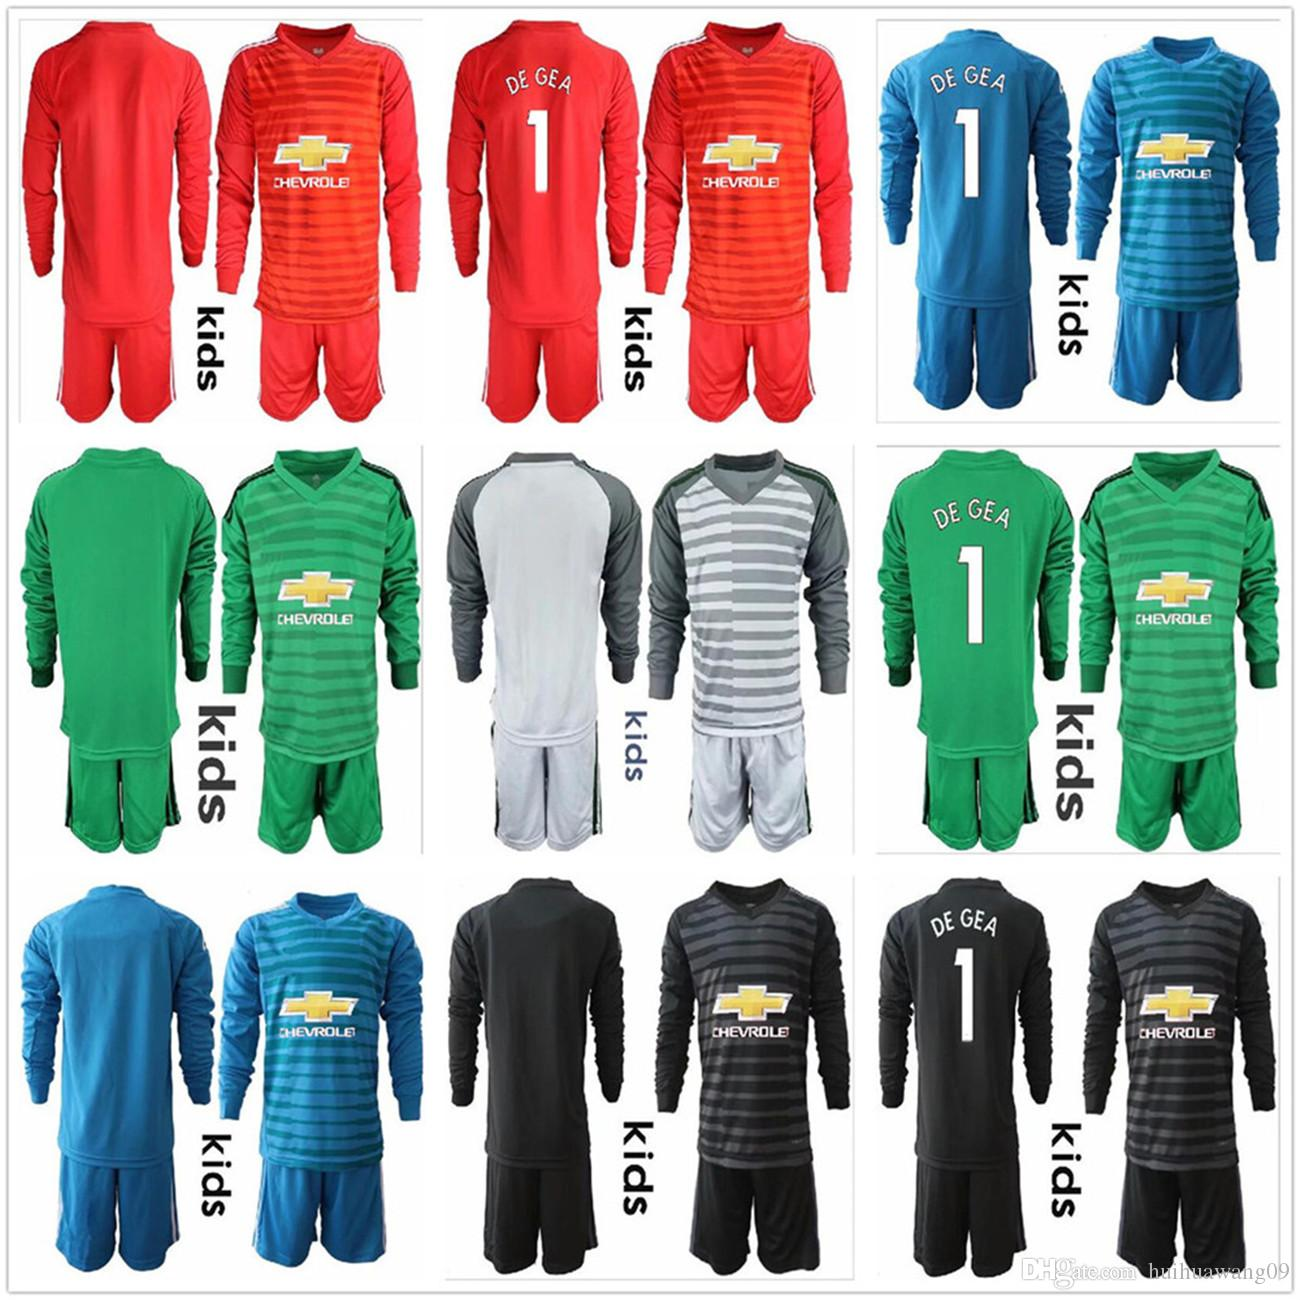 sports shoes be0c8 b6852 2018-19 Youth Long Sleeve Kids Boys De Gea Goalkeeper Soccer sets #1 David  De Gea keeper Soccer Sets #22 Romero Boy Jerseys Uniform Sets